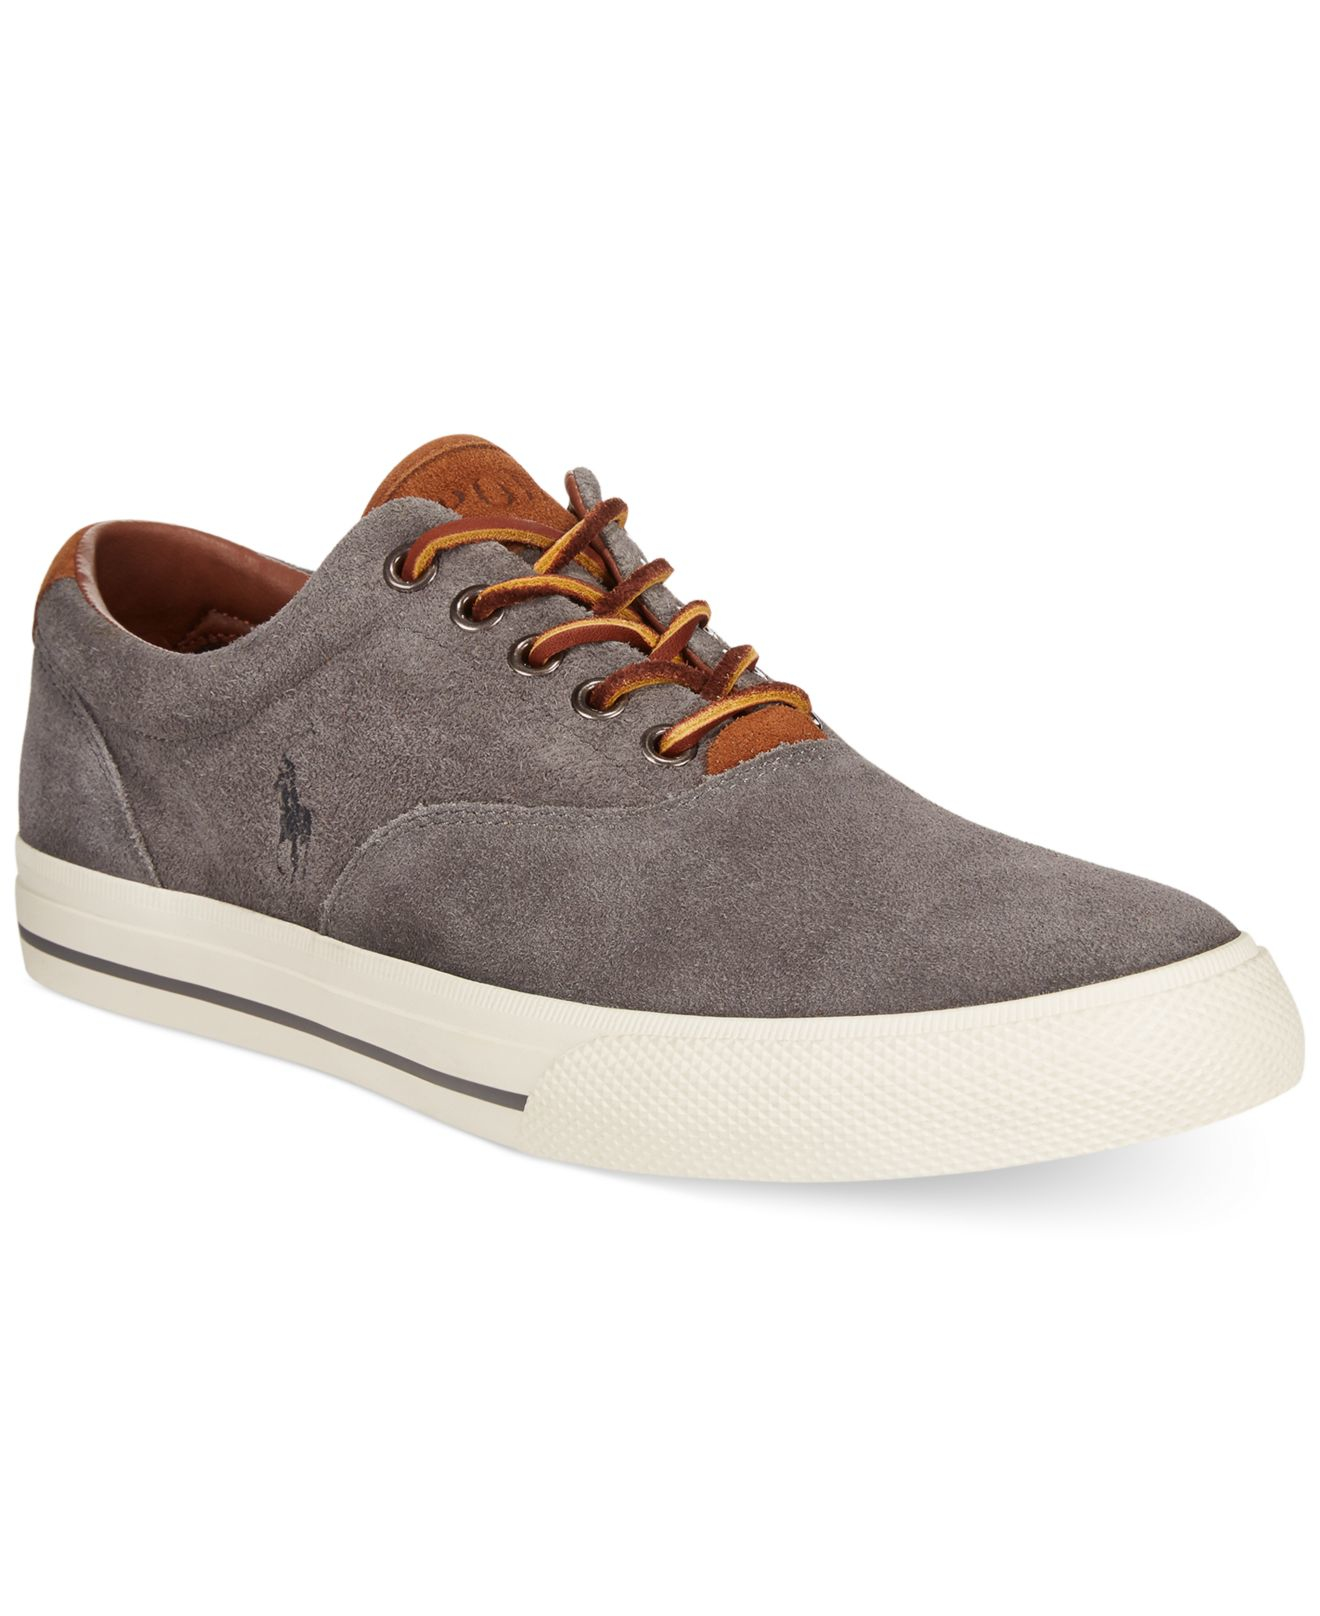 polo ralph lauren vaughn suede sneakers in gray for men charcoal grey. Black Bedroom Furniture Sets. Home Design Ideas